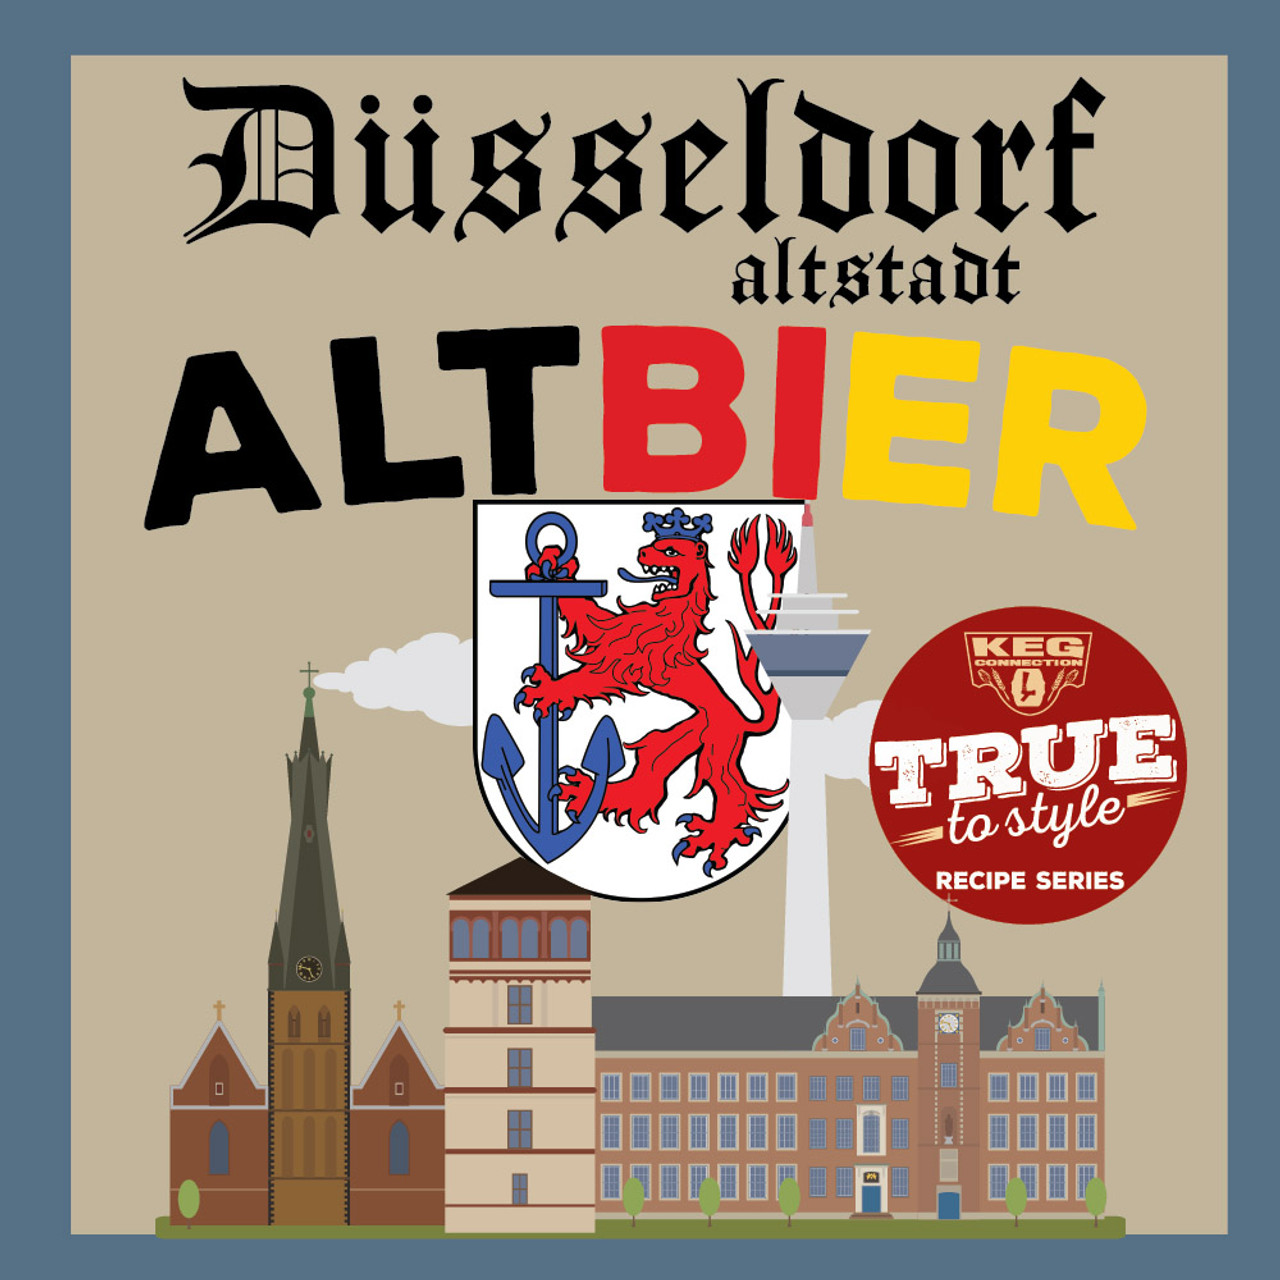 Dusseldorf Altbier, True to Style All-Grain Recipe Kit